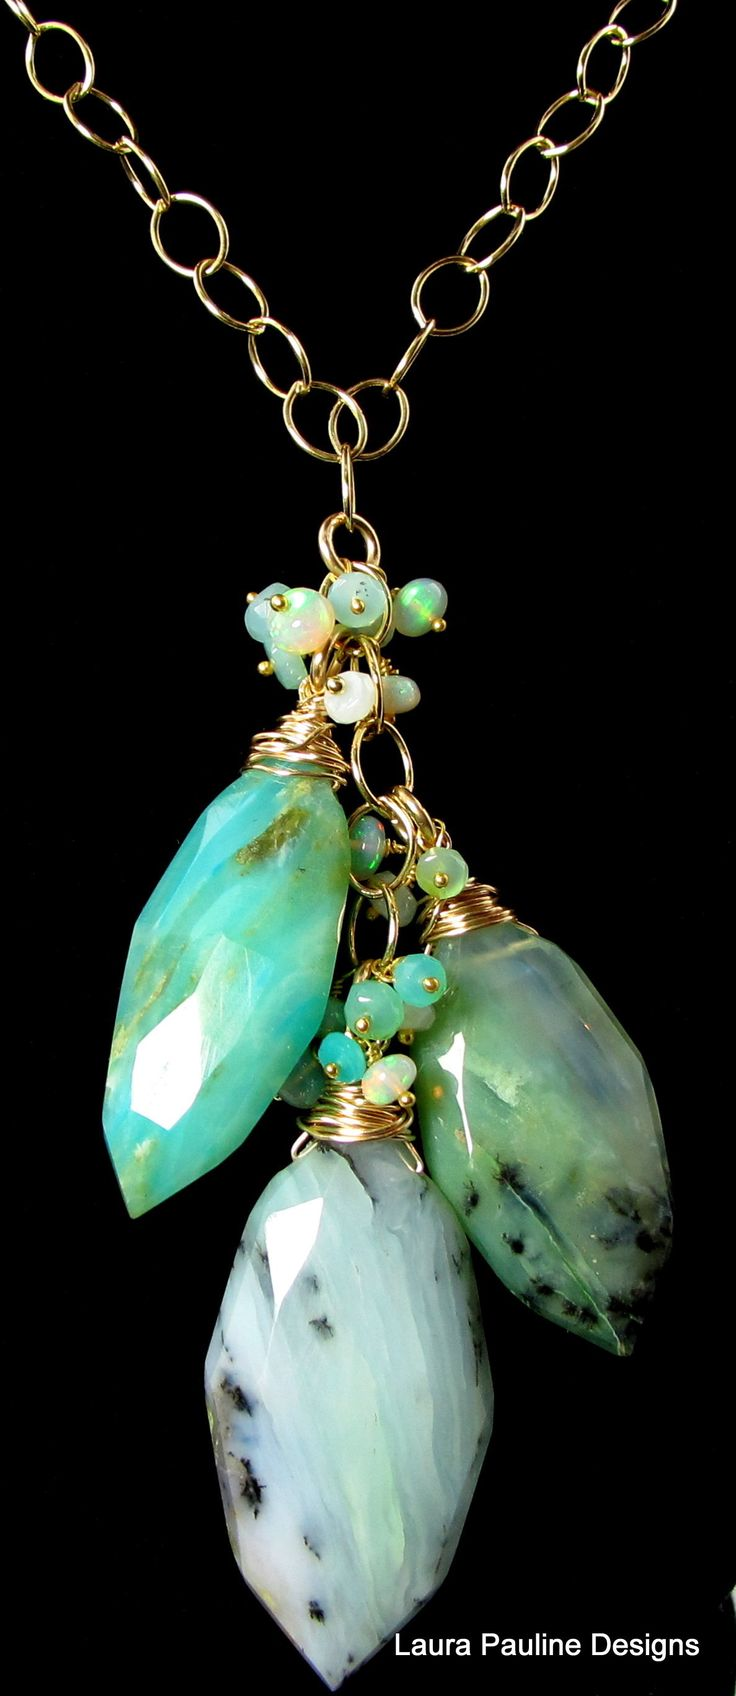 Necklace |  Laura Pauline.  Peruvian Blue Opal, Ethiopian Opal And Gold